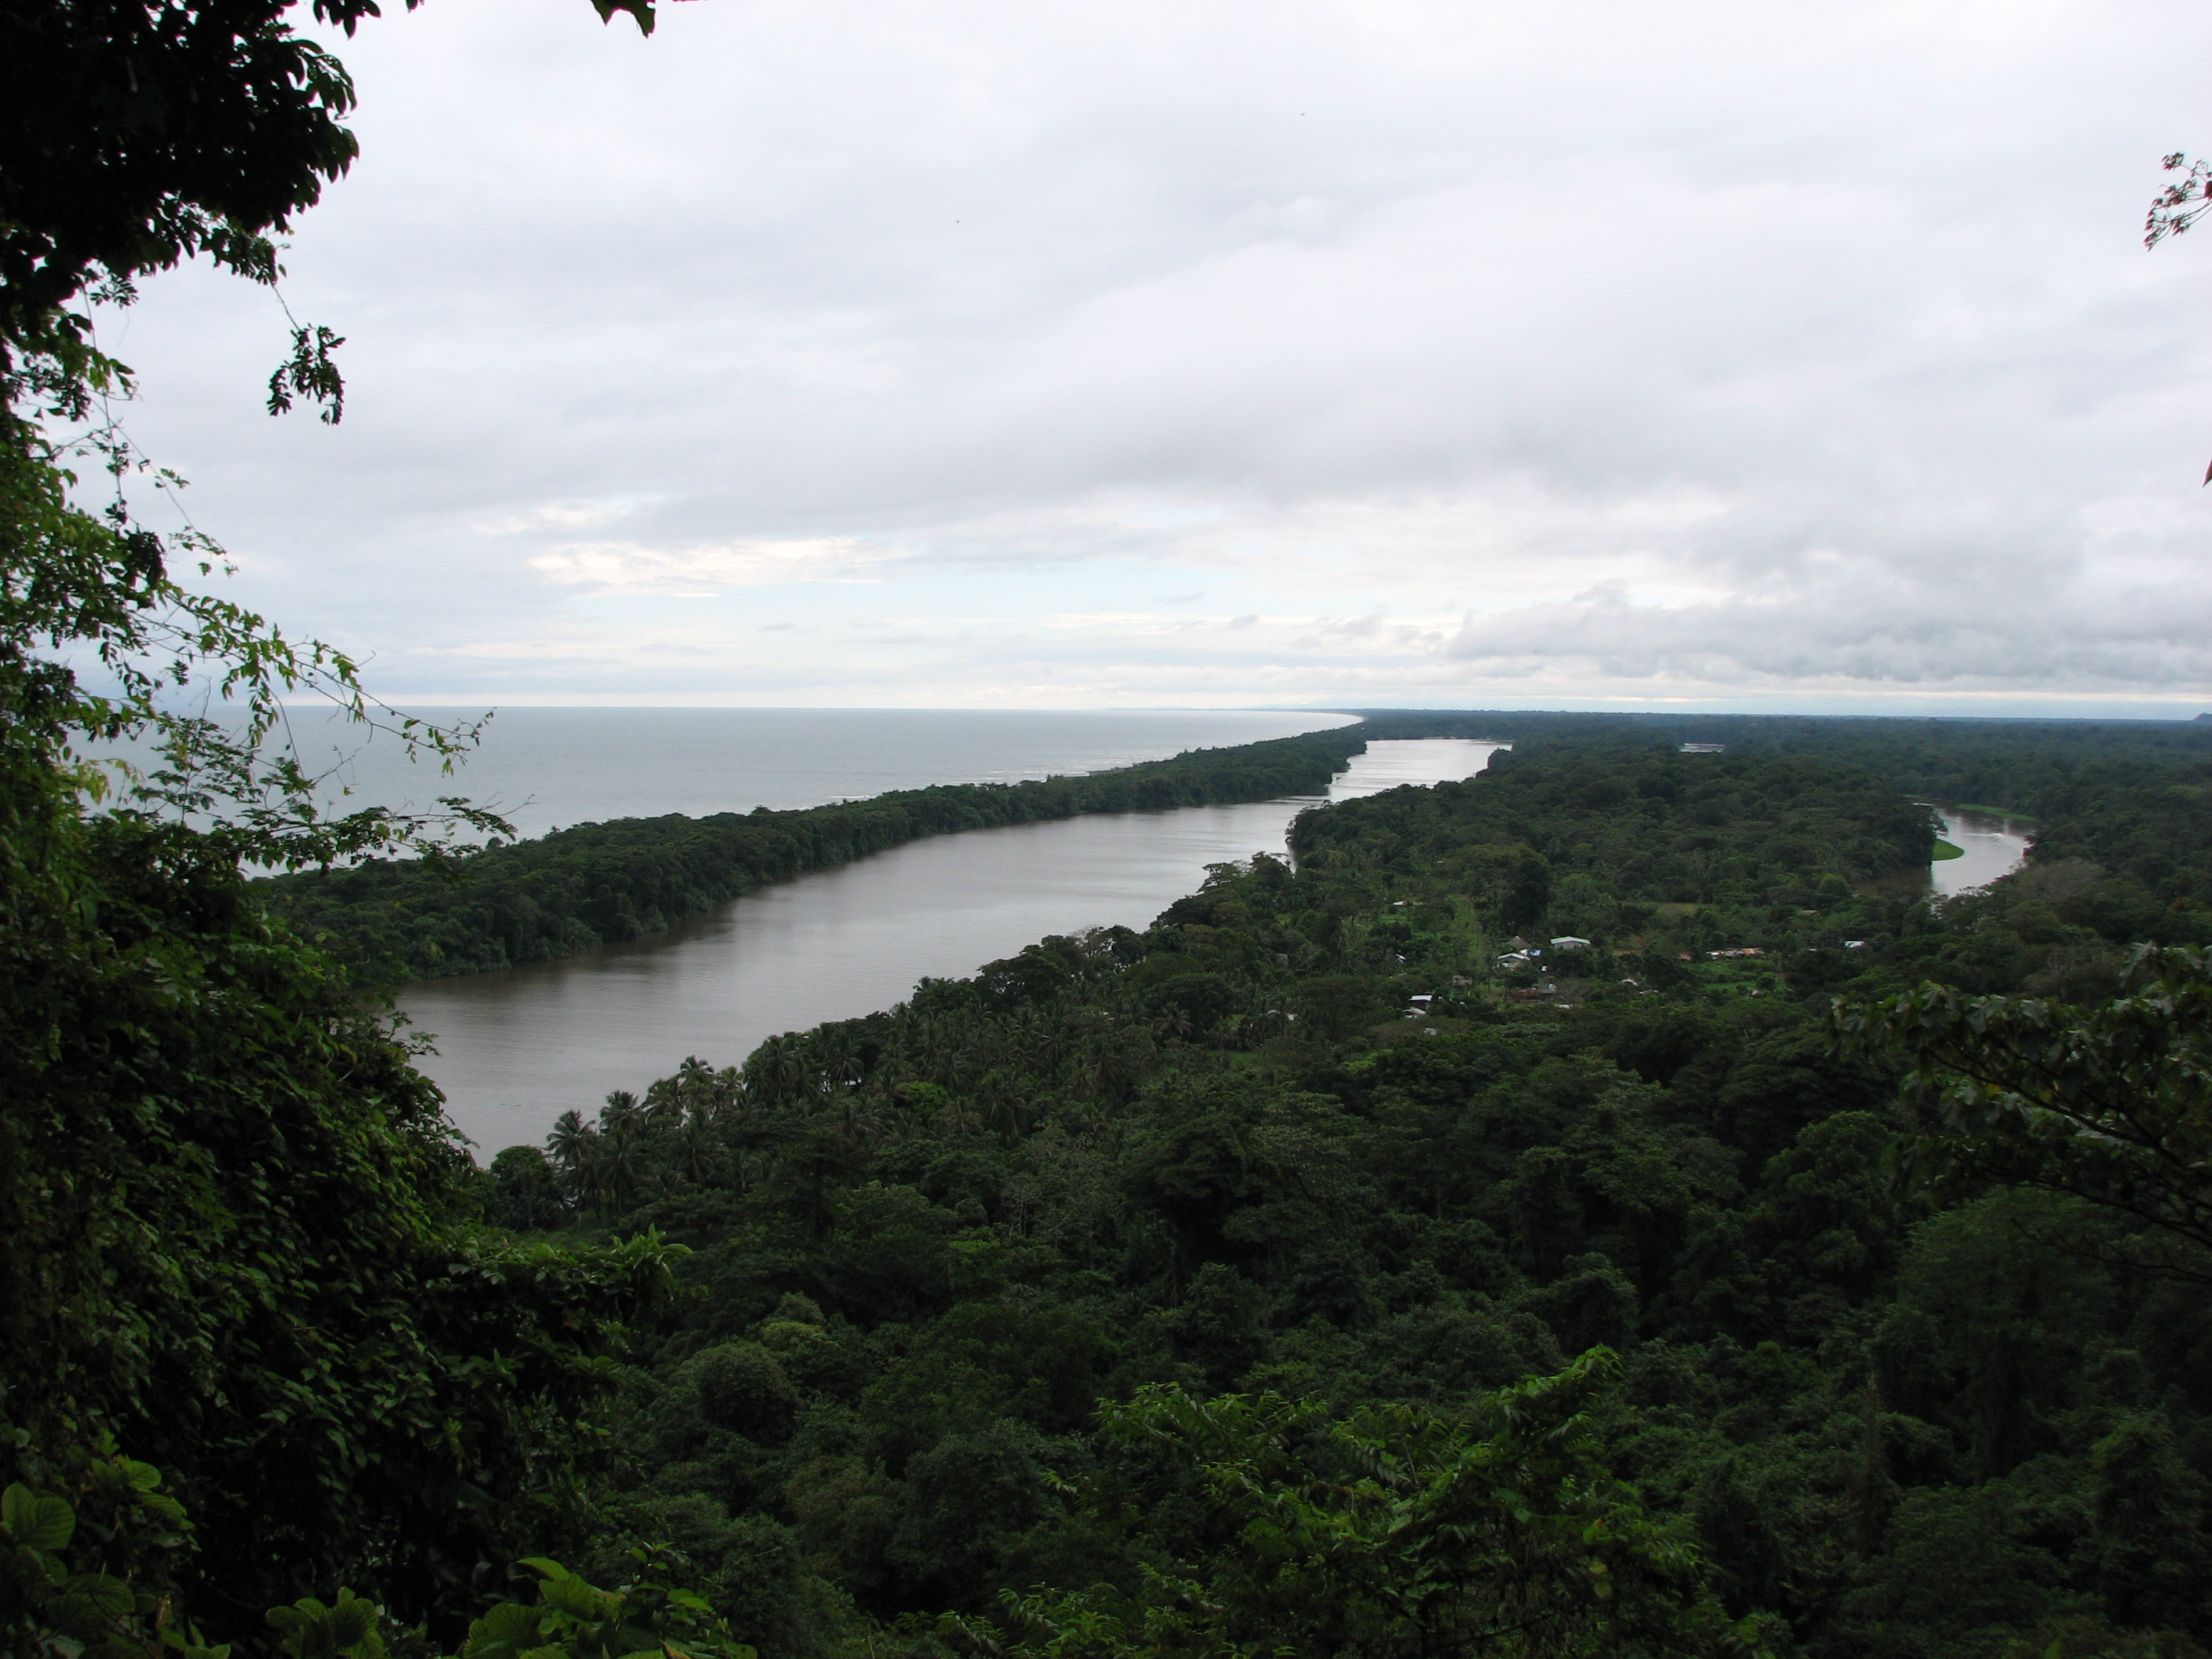 Tortuguero: a stunning national park filled with  rainforest and canals